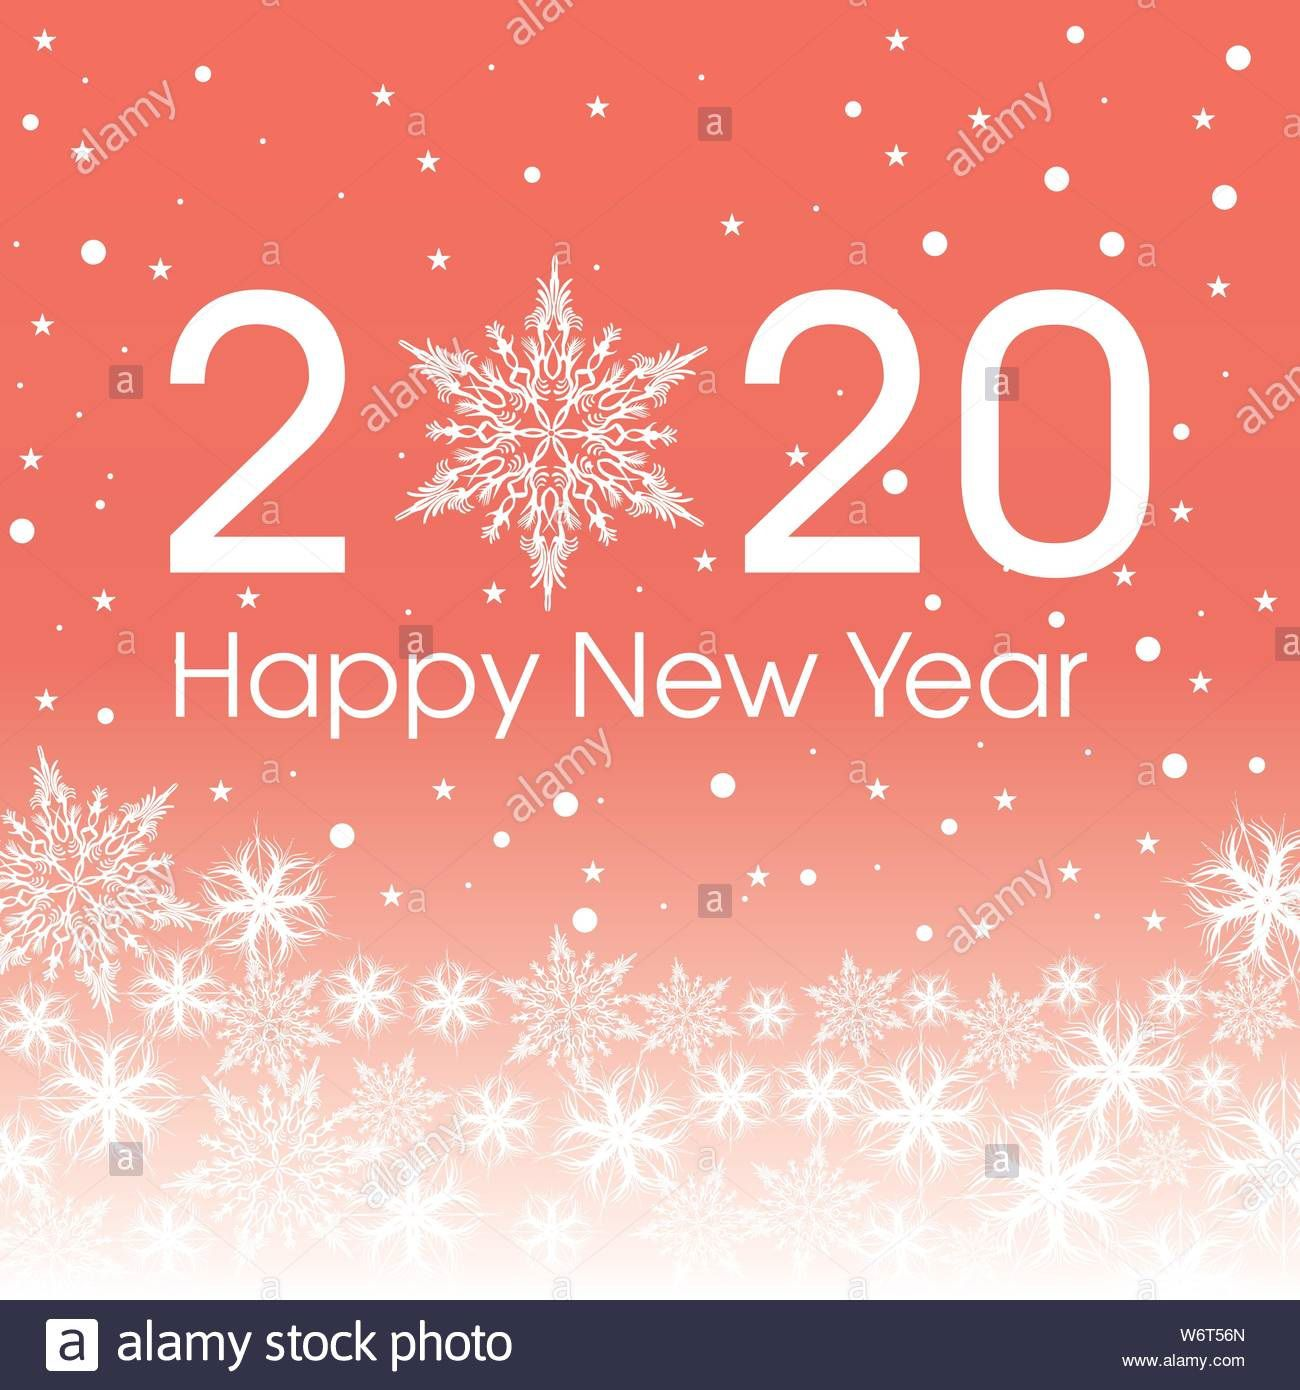 000 Shocking New Year Card Template High Definition  Happy Chinese 2020 FreeFull